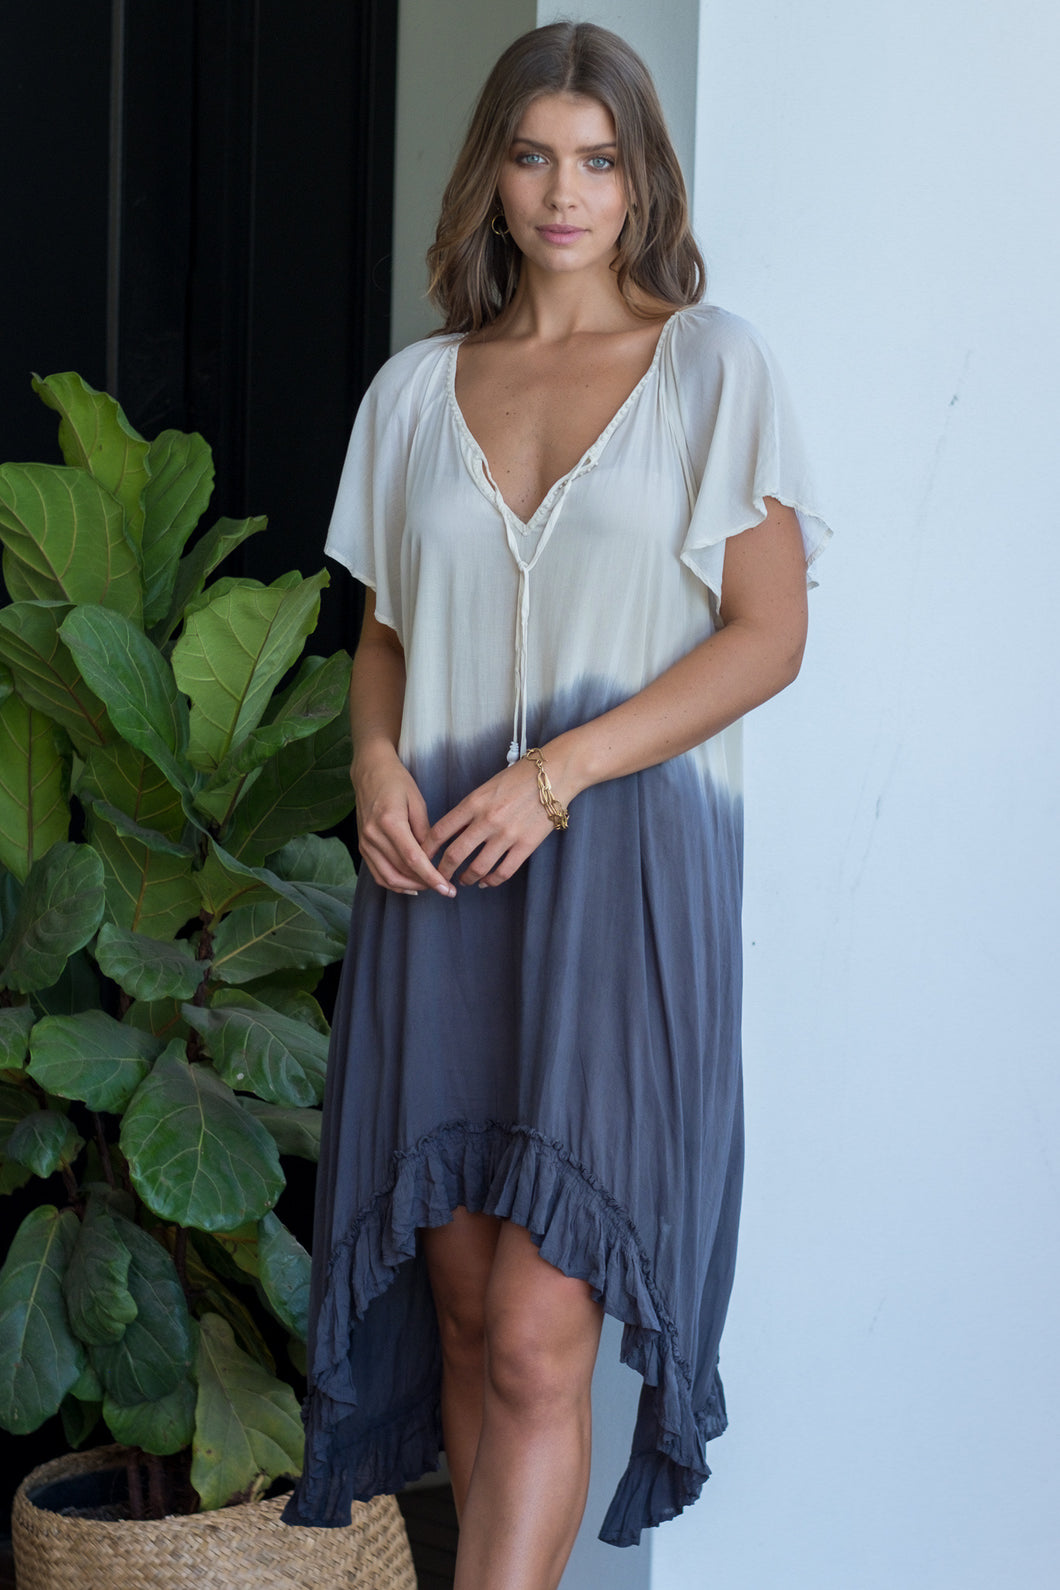 Maria Kaftan Dress Tulum